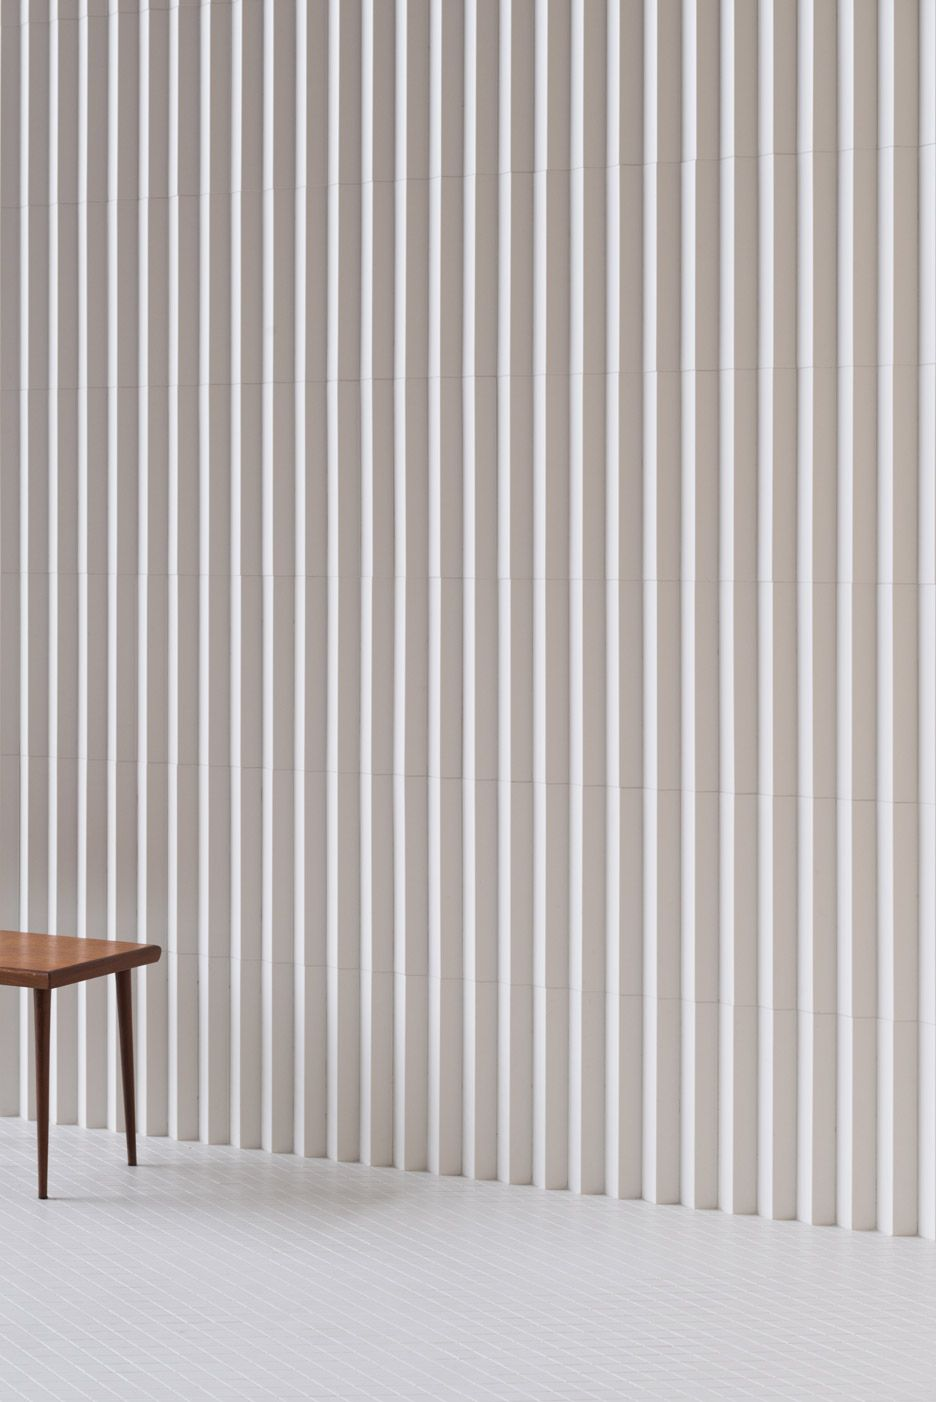 Ronan And Erwan Bouroullec Have Created A Range Of